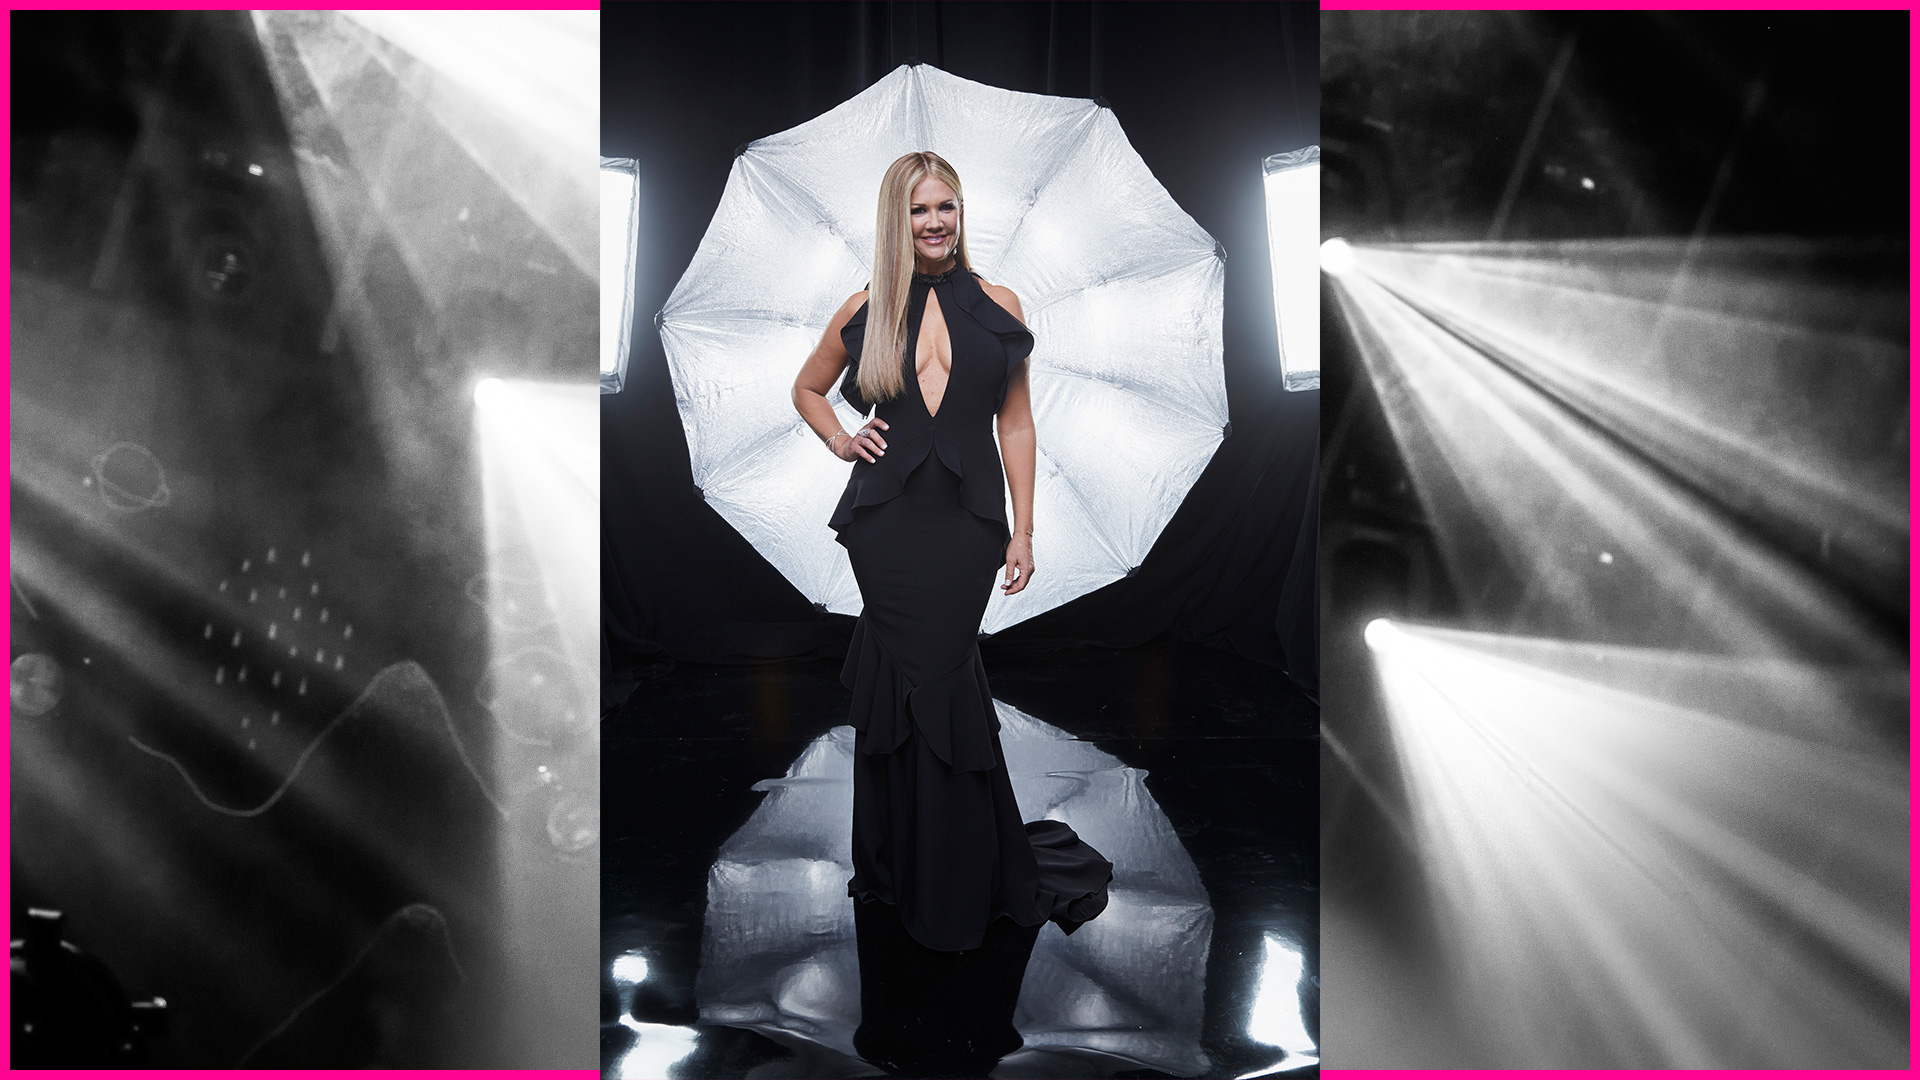 Entertainment Tonight host Nancy O'Dell perfects the hand-on-the-hip pose with style and grace.